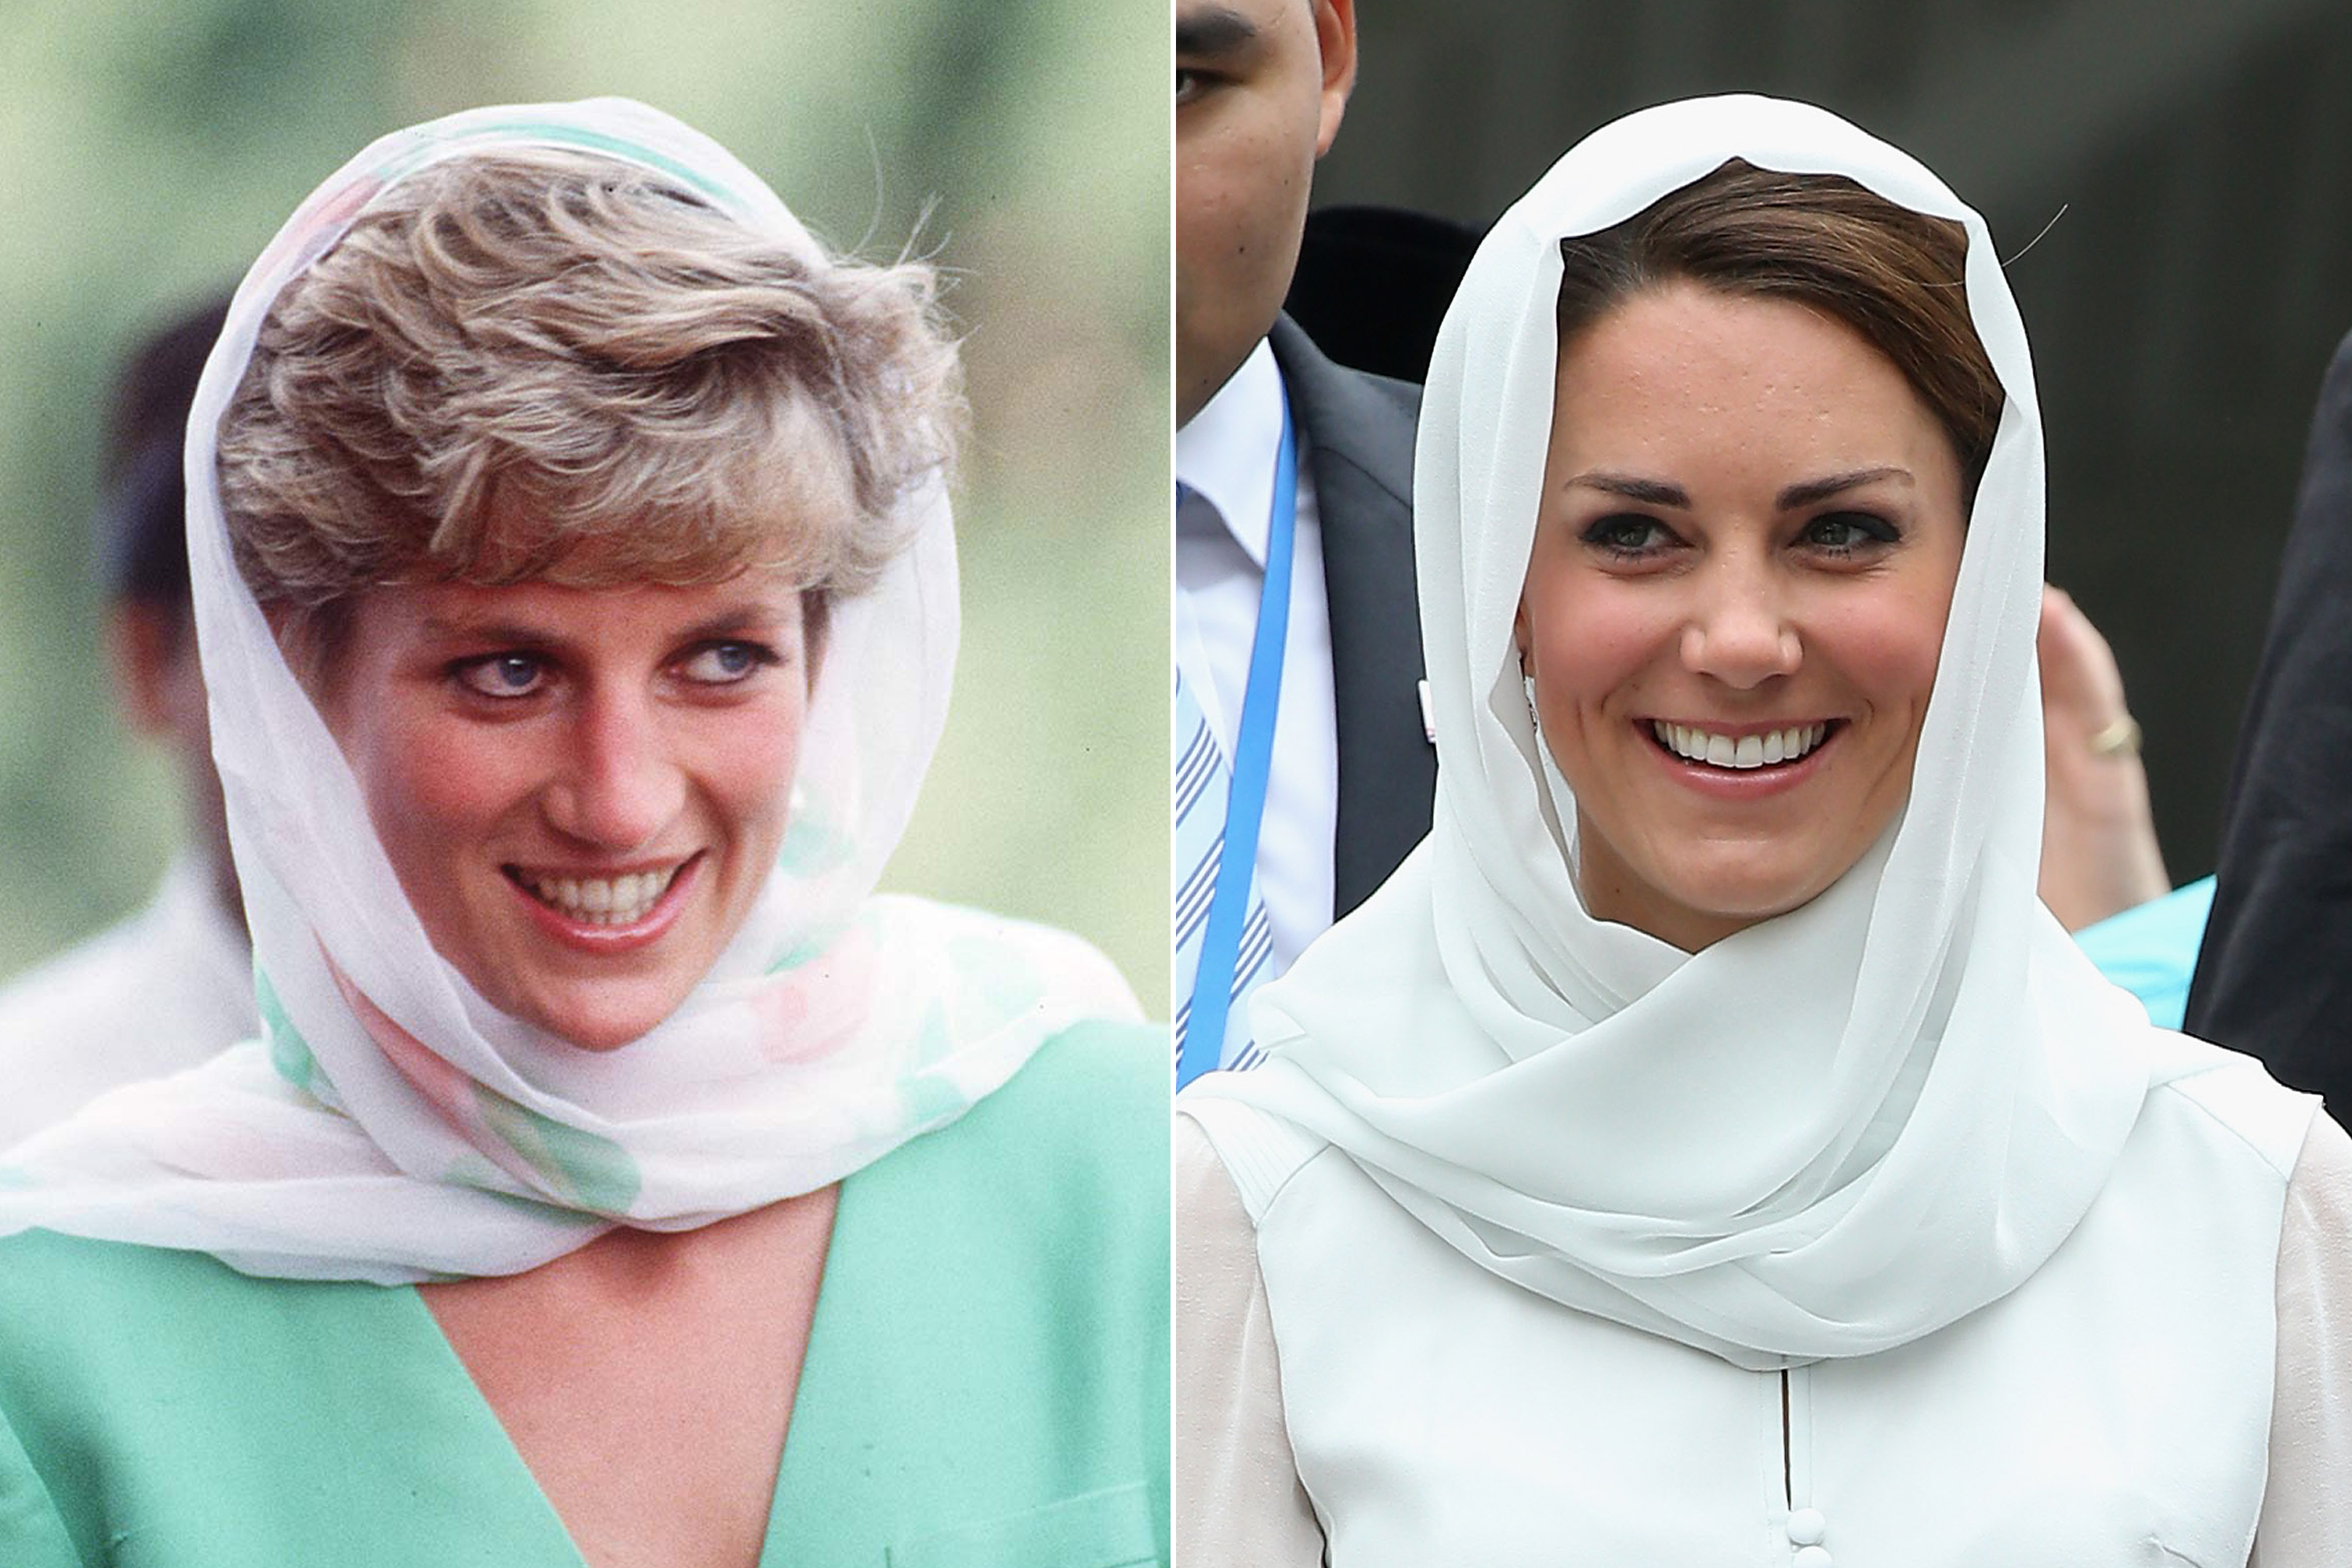 The Princess opted to cover her head on a trip to Pakistan, observing the customs of modesty for women in the country. Kate followed suit by observing religious protocol during a trip to Malaysia.